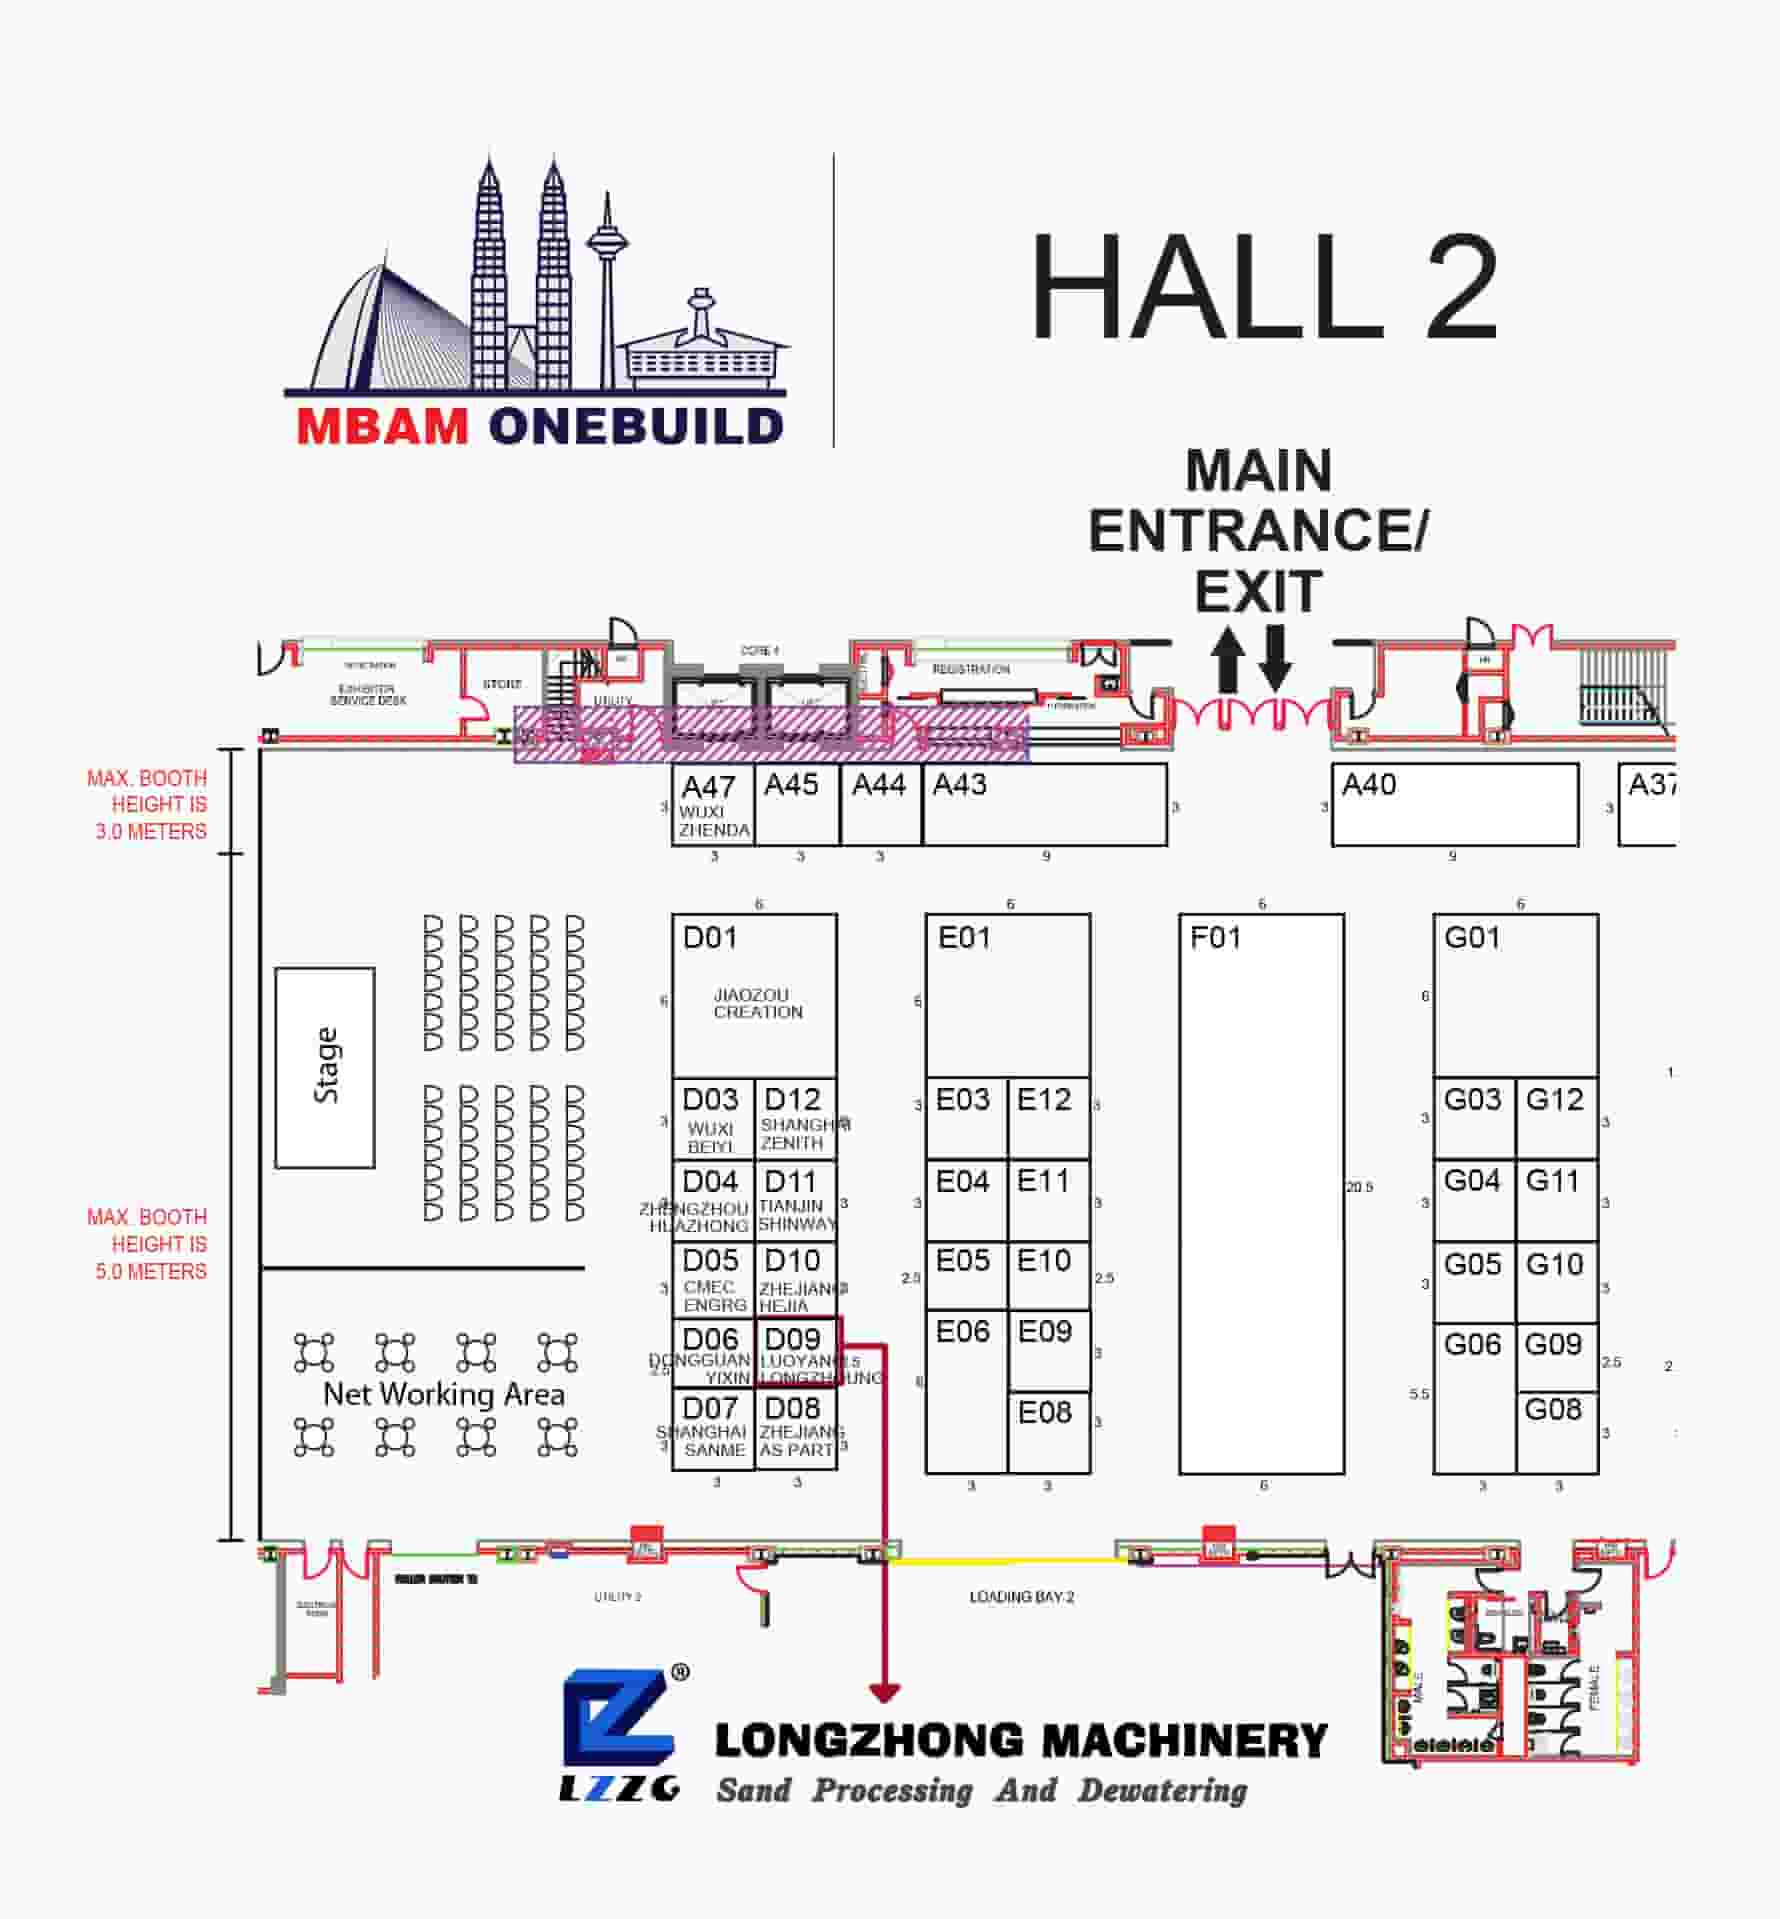 Aseanmach (Asean Heavy Machinery & Equipment Exhibition) 2017 in Malaysia